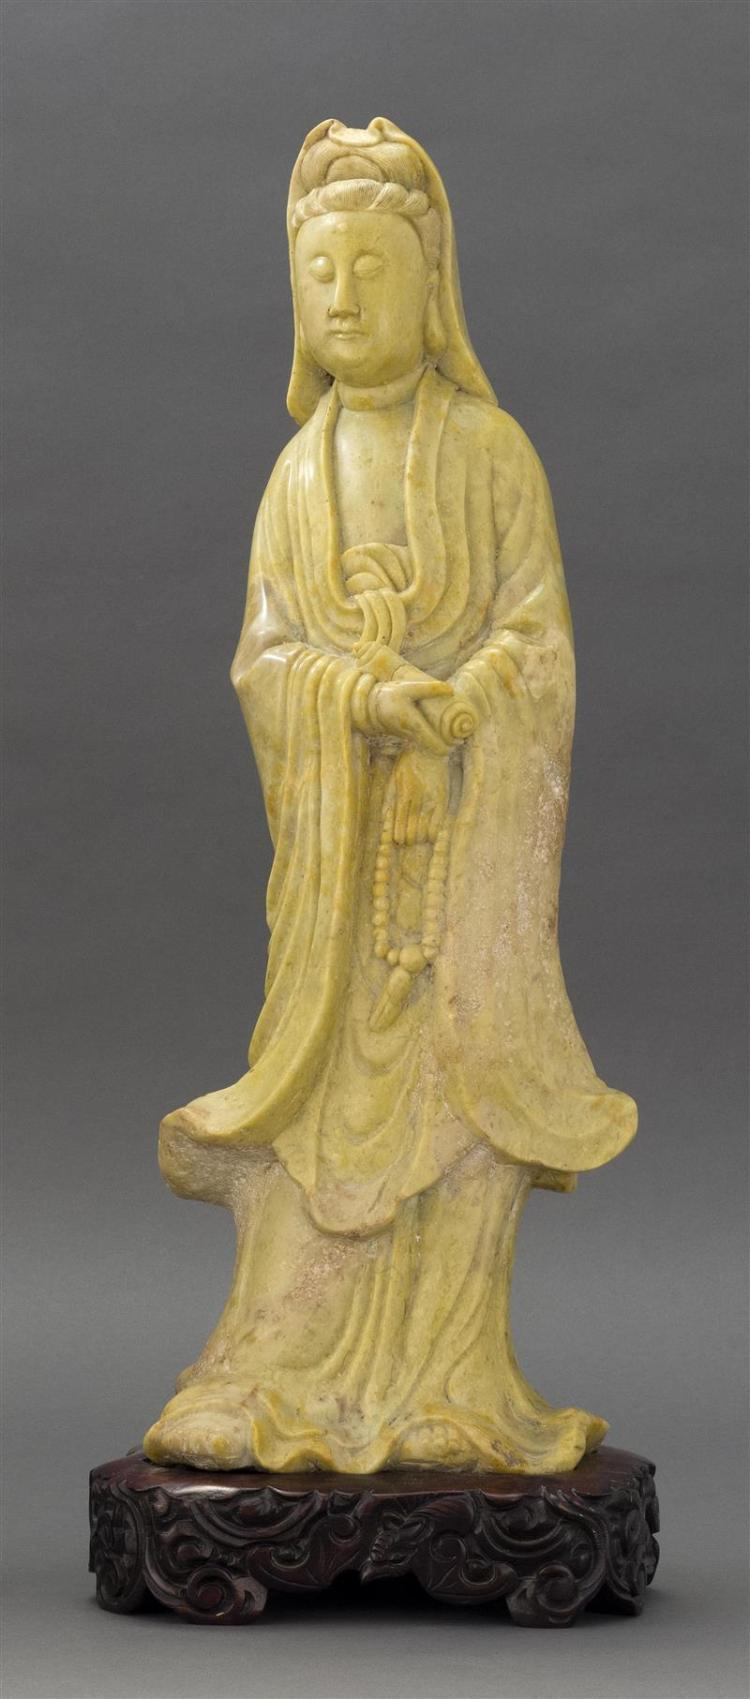 SOAPSTONE FIGURE OF GUANYIN In standing position holding prayer beads and scroll. Height 19